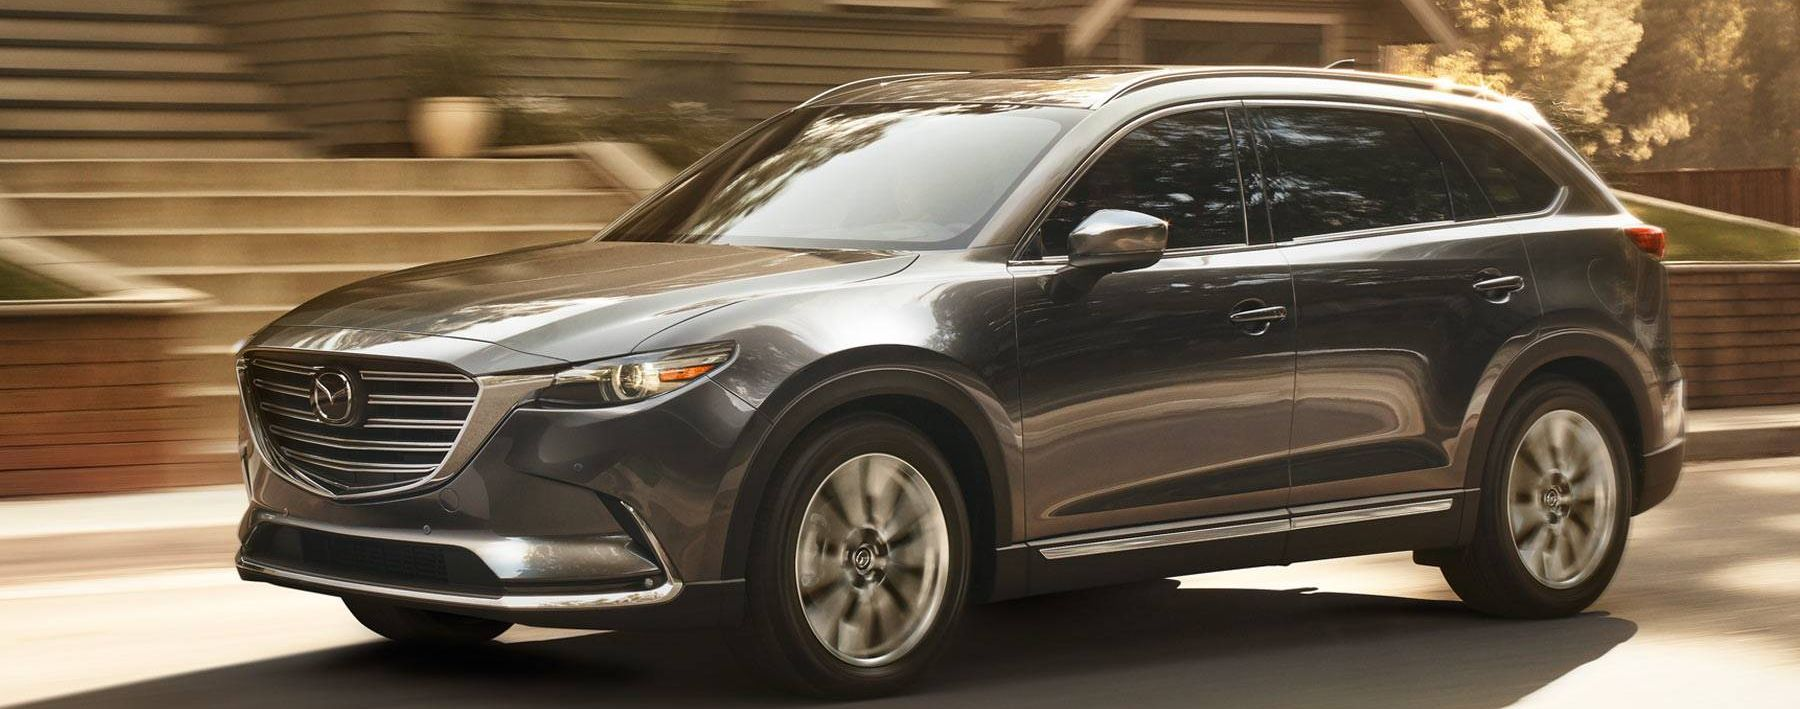 2019 Mazda CX-9 Financing near Mesa, AZ